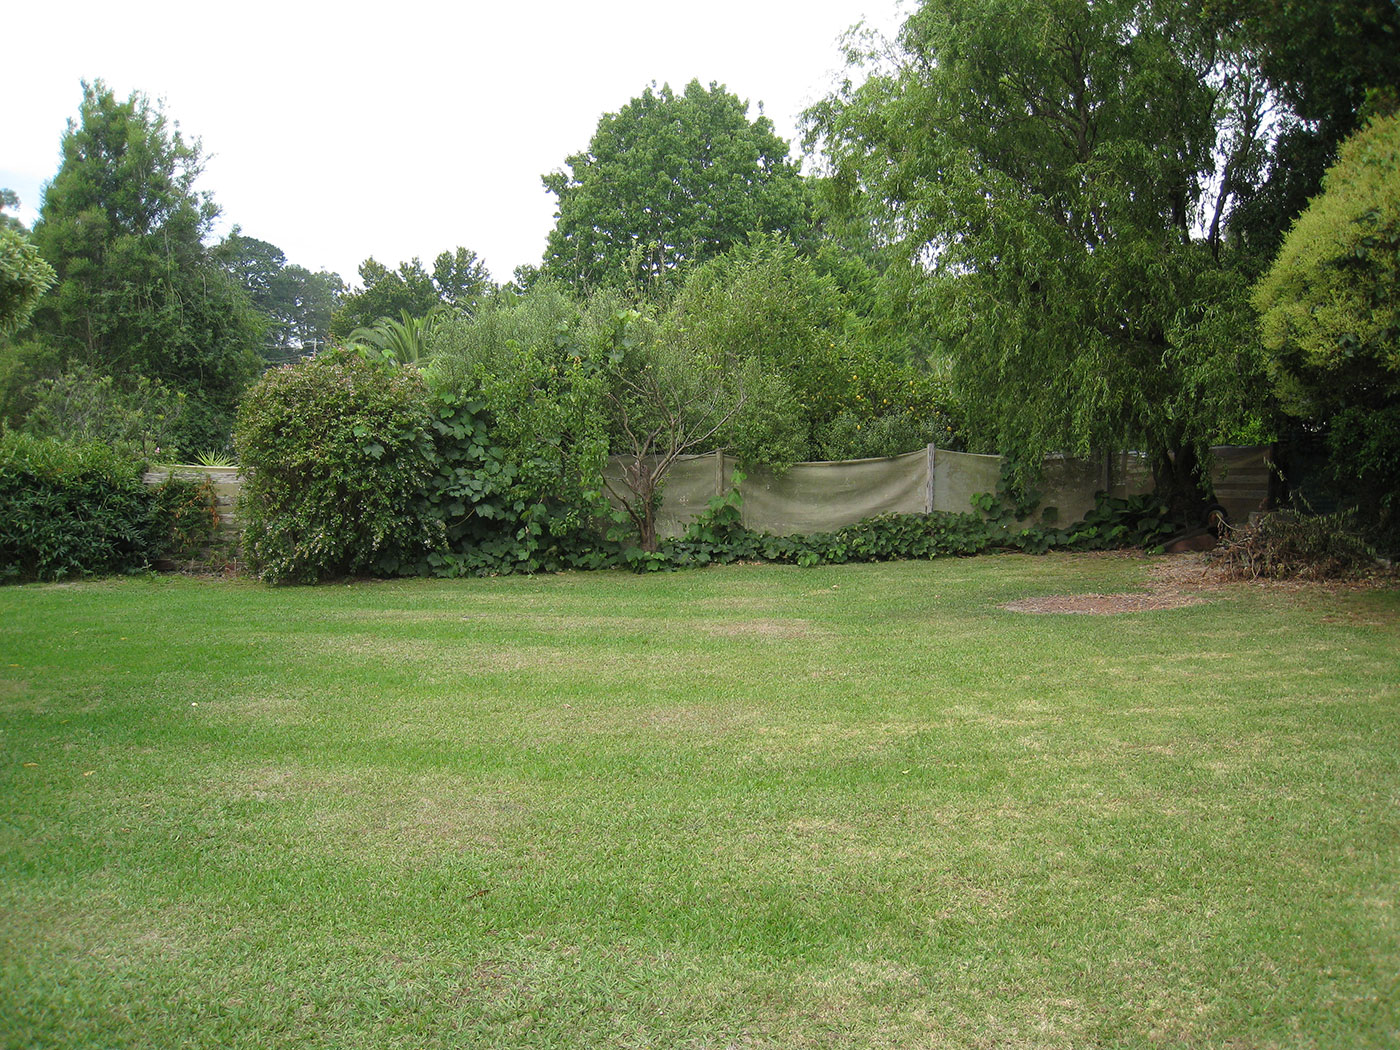 The bowler's-end view of the Maxwell family backyard